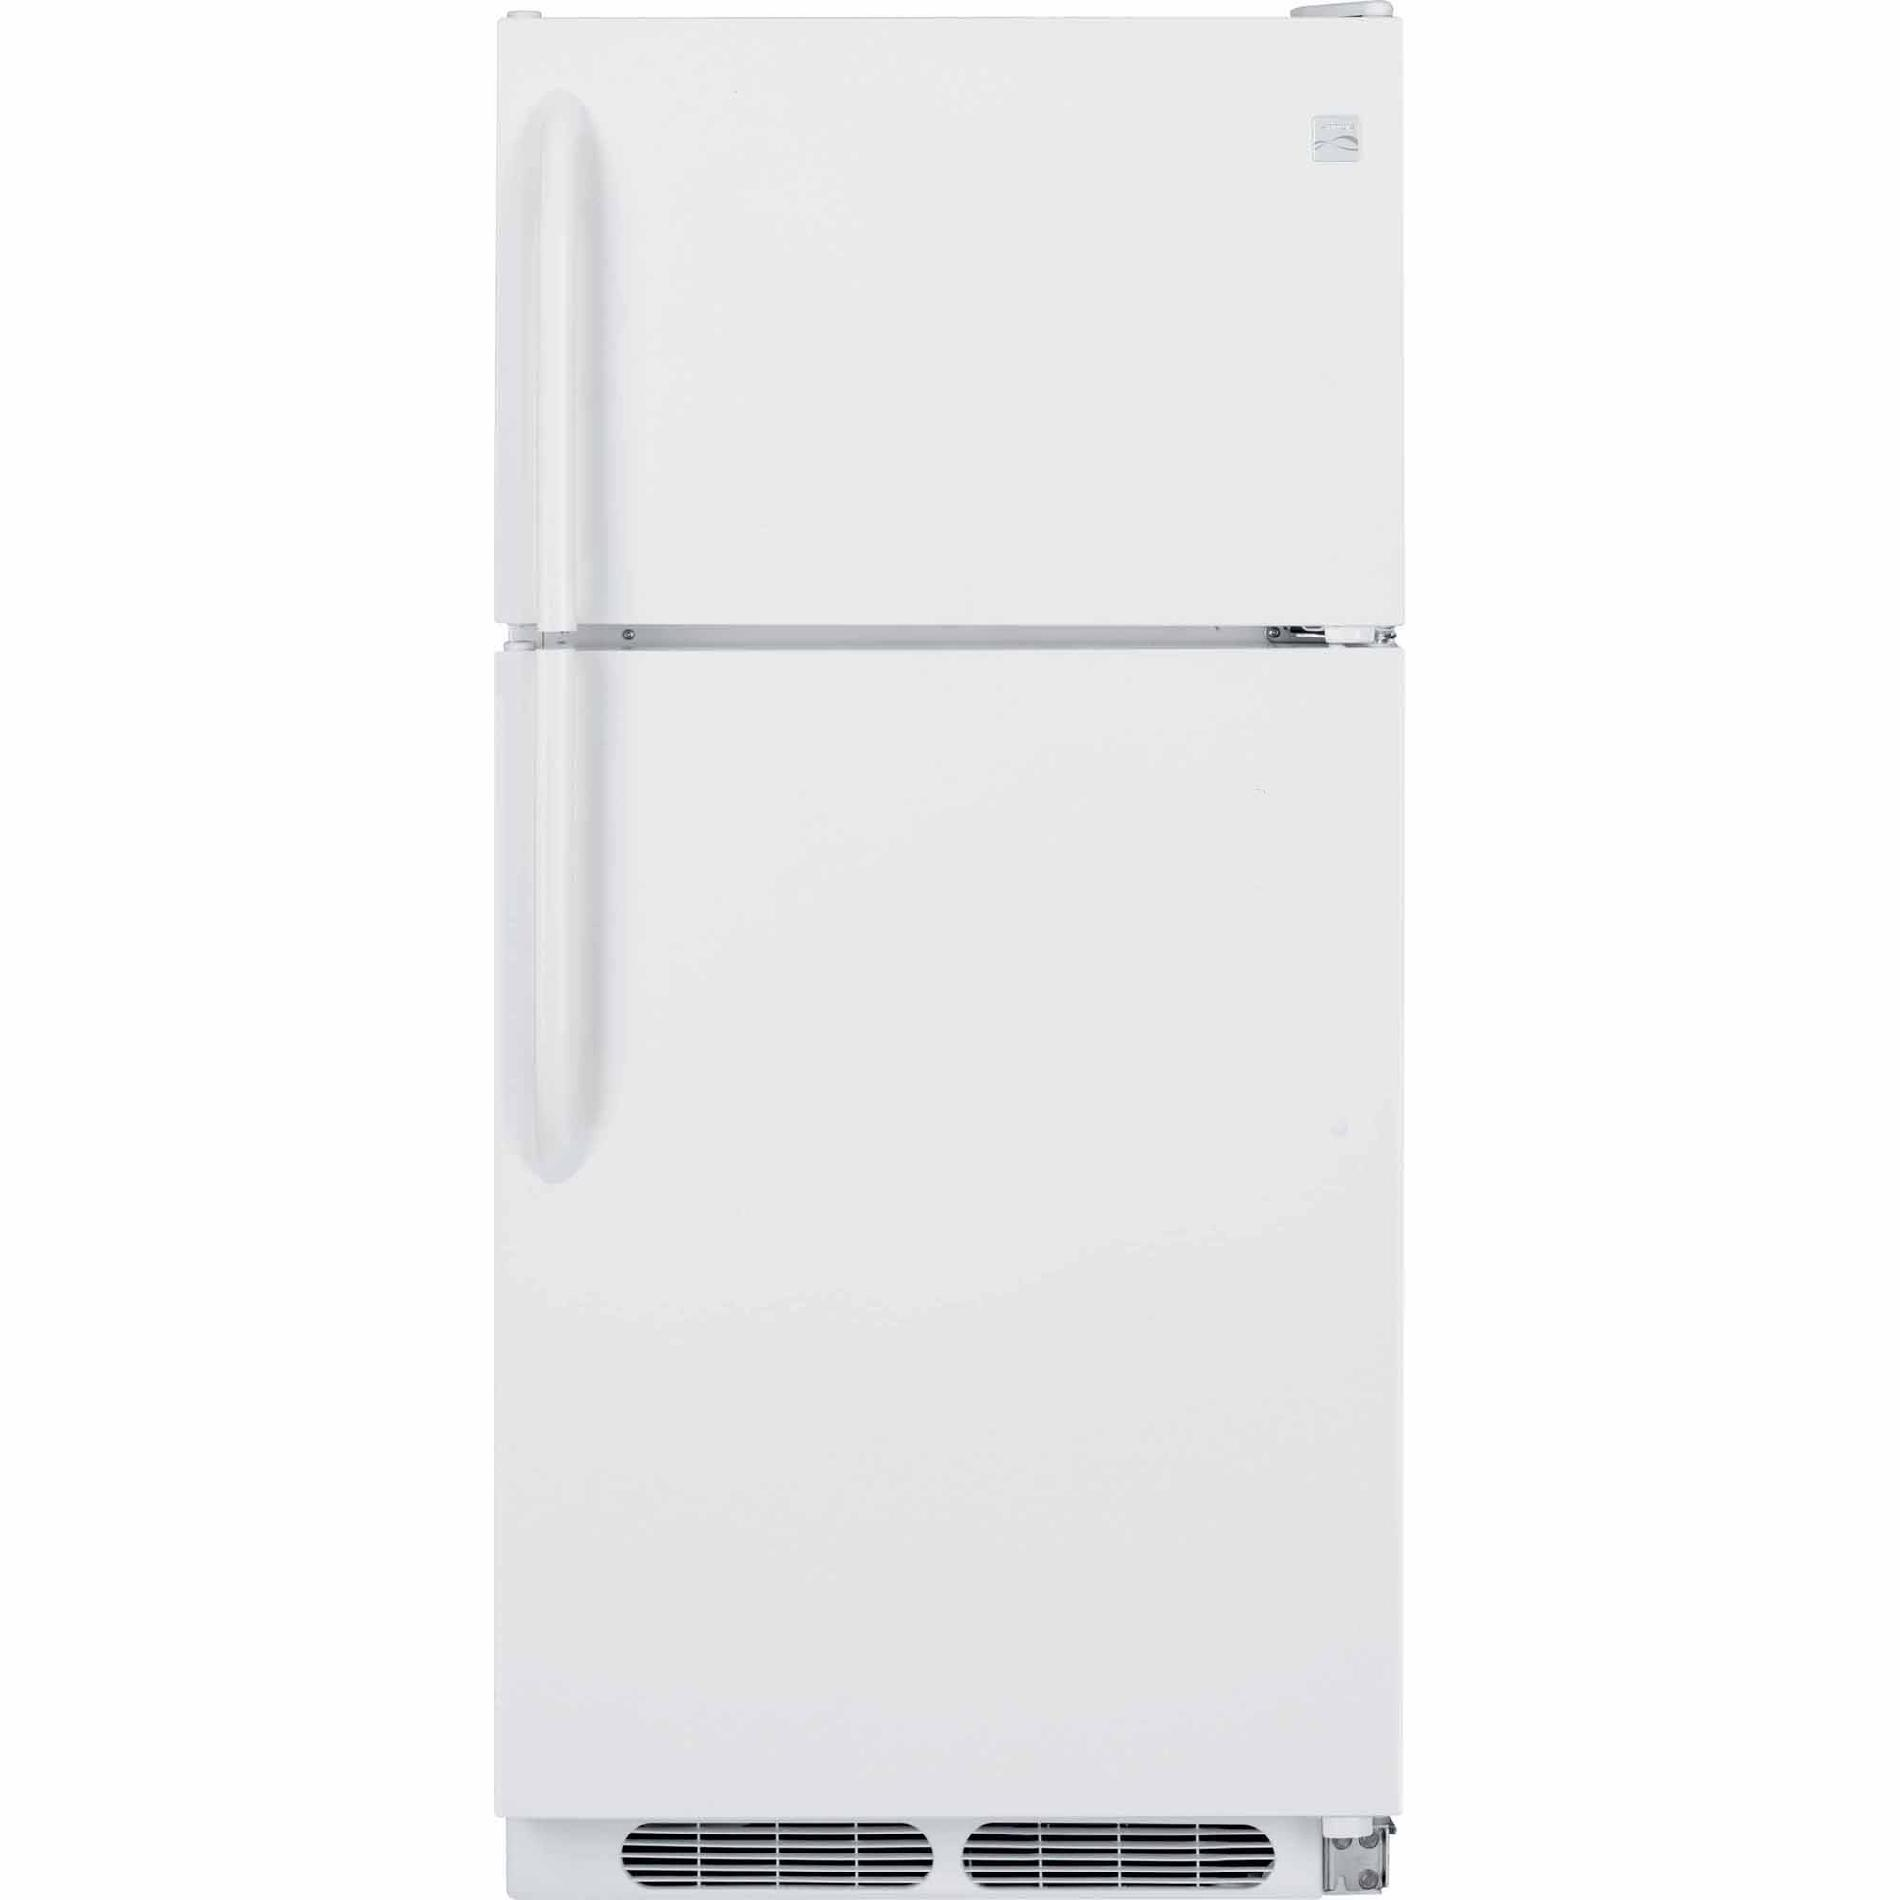 60302-14-8-cu-ft-Top-Freezer-Refrigerator-White